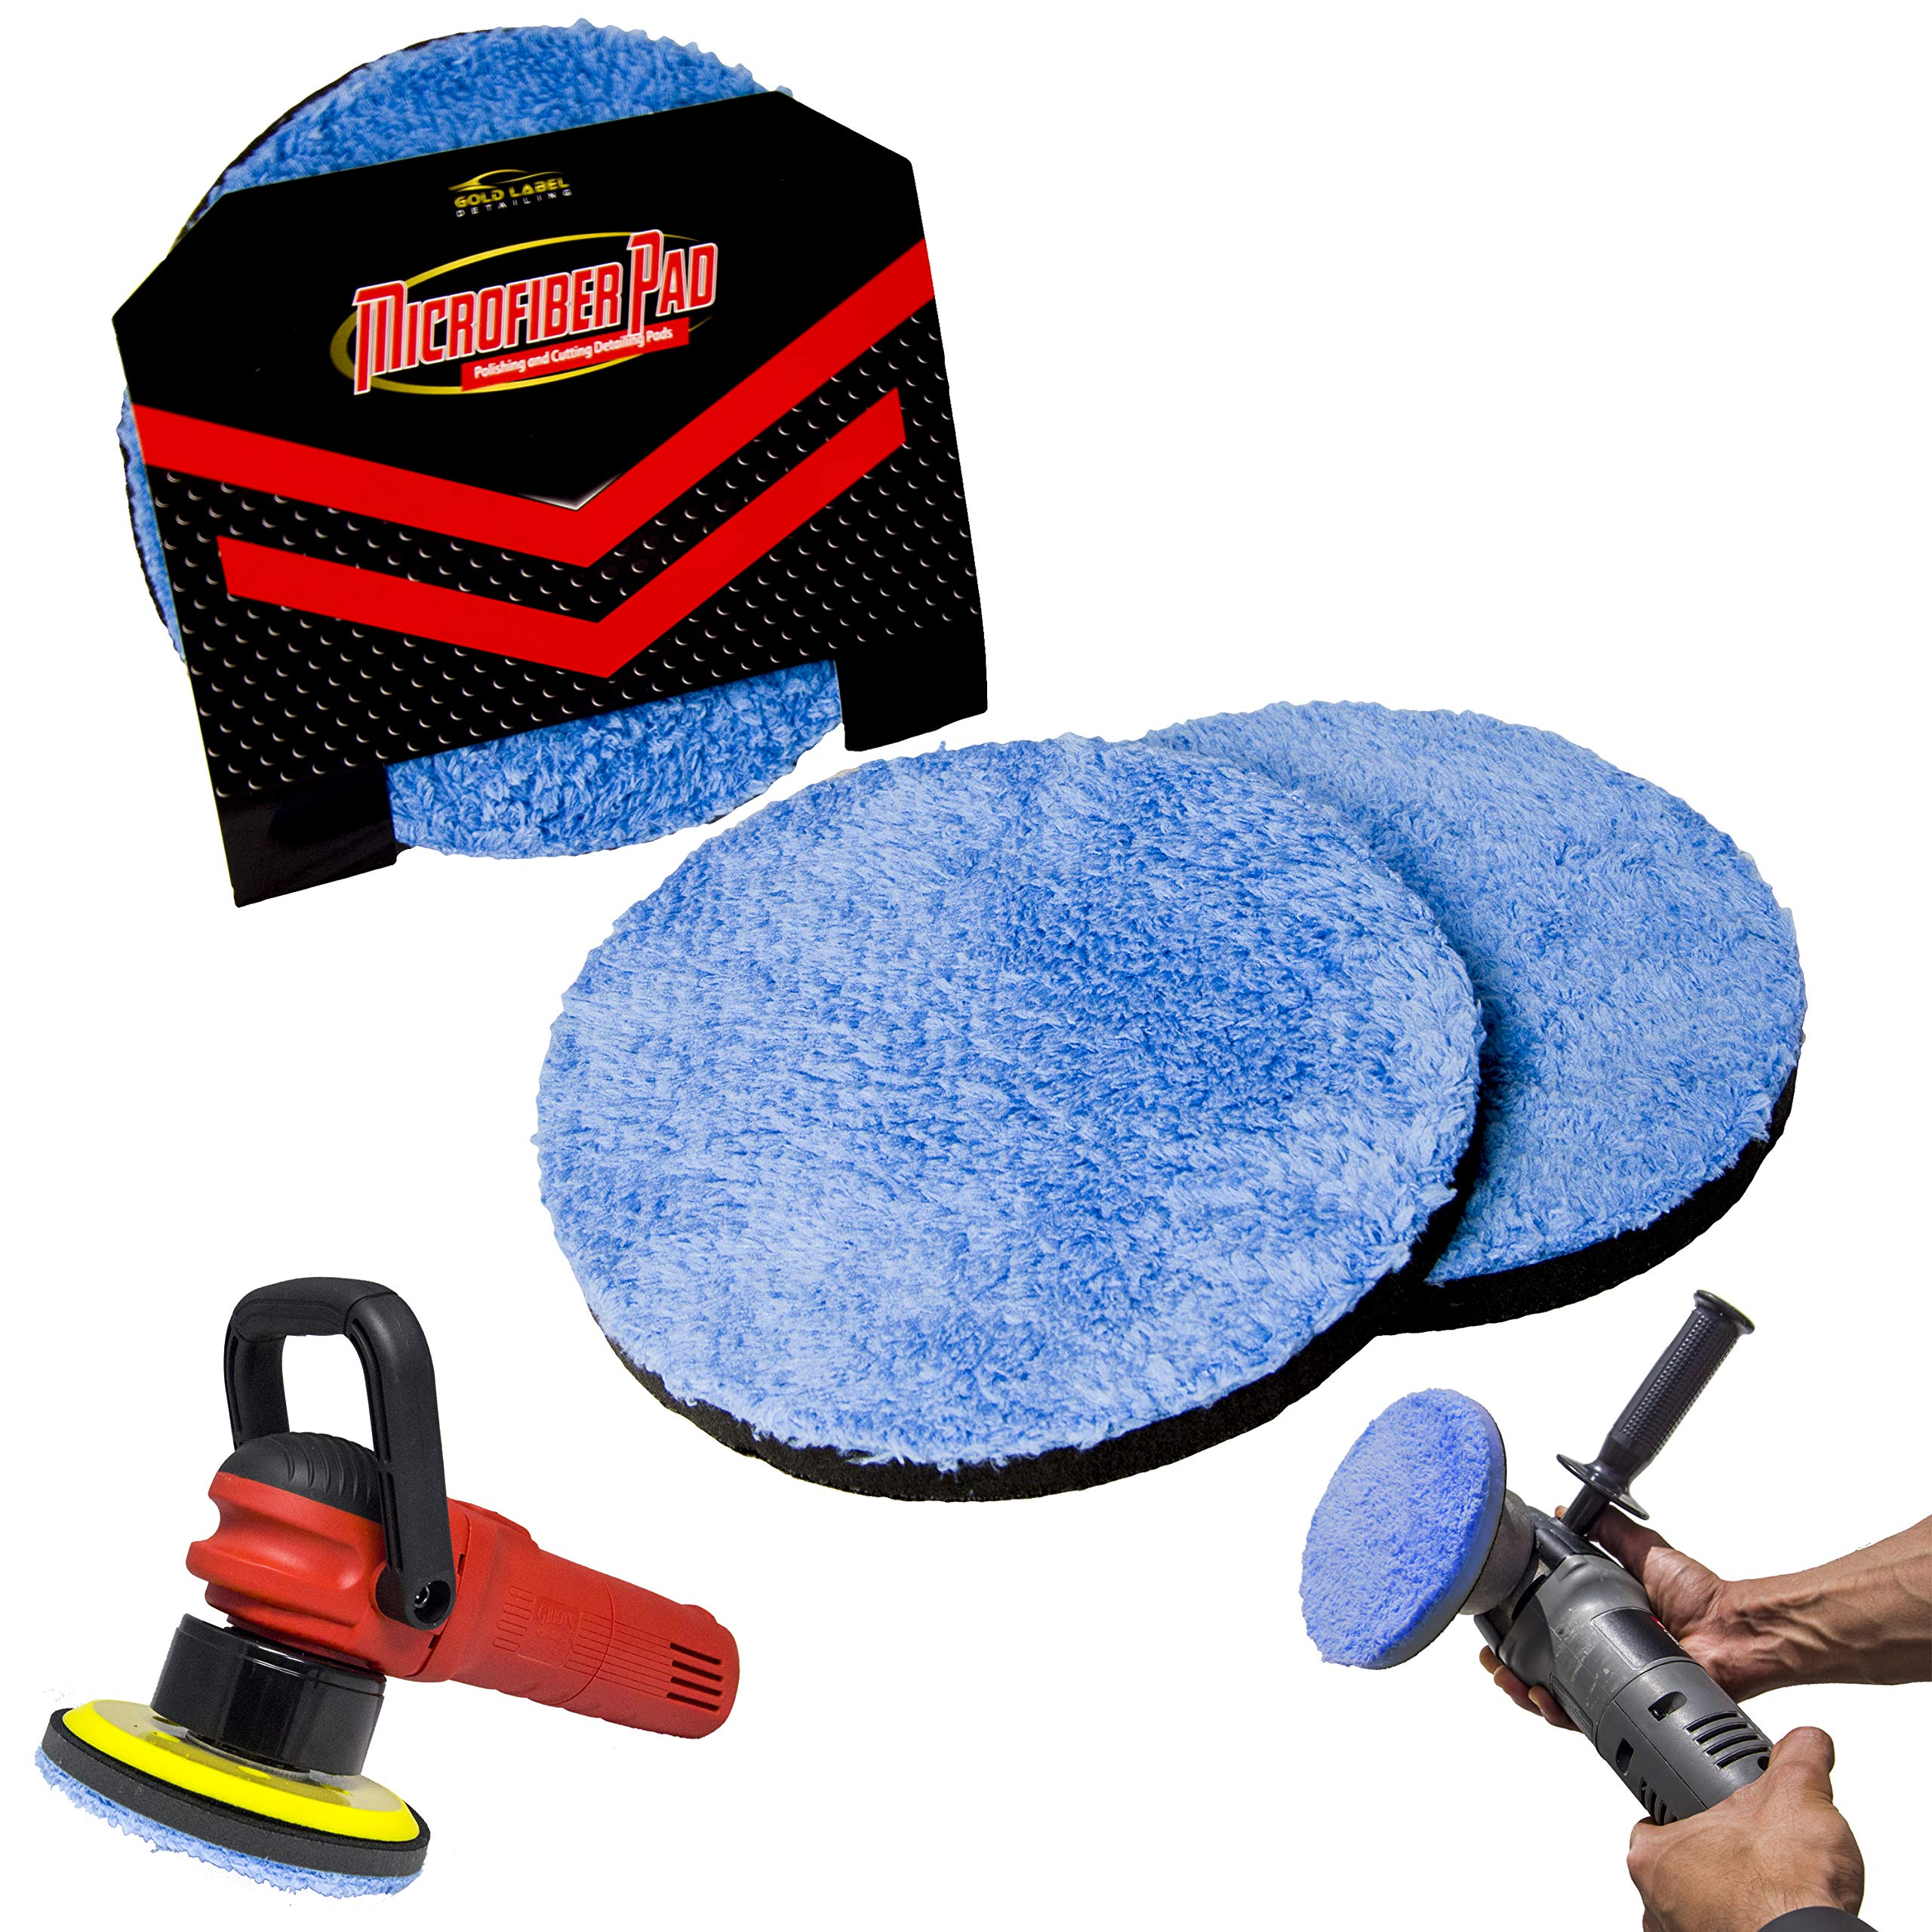 Microfiber DA Buffing and Cutting Pads 2 Pack of 6'', 5'', or 3'' | Quick Detailing Disk | Remove Swirls Scratches and Hazing | Machine Washable (5'', 2x Buffing)